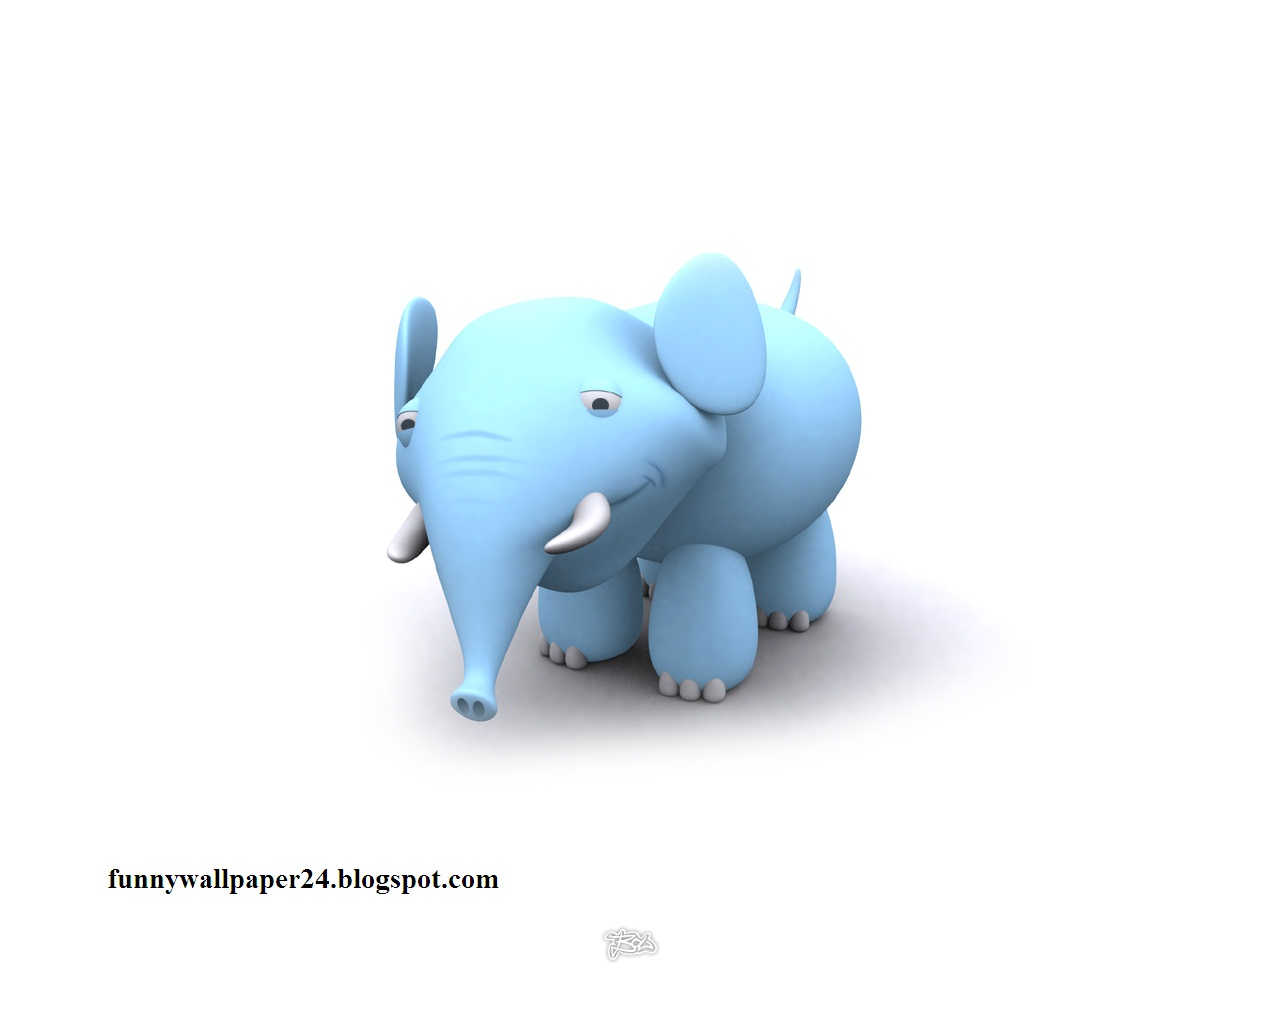 3d animal wallpapers, free animated wallpapers, free animated wallpaper, 3d animal wallpaper, 3d animated wallpaper, 3d animated wallpapers free, wallpaper for free, animal 3d wallpaper, wallpapers, wallpaper